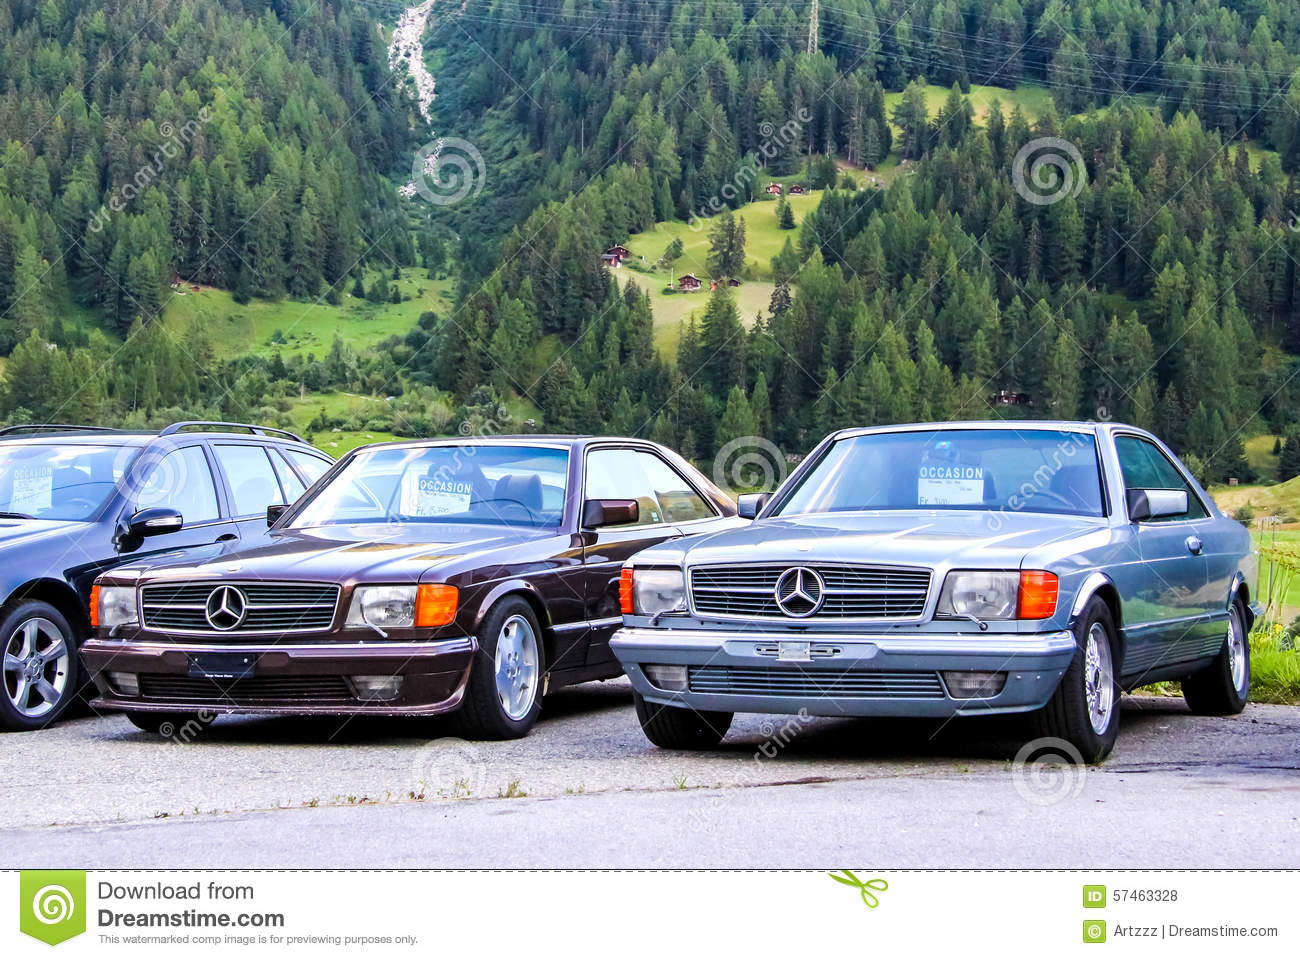 mercedes benz w126 sec class editorial stock photo image 57463328. Black Bedroom Furniture Sets. Home Design Ideas